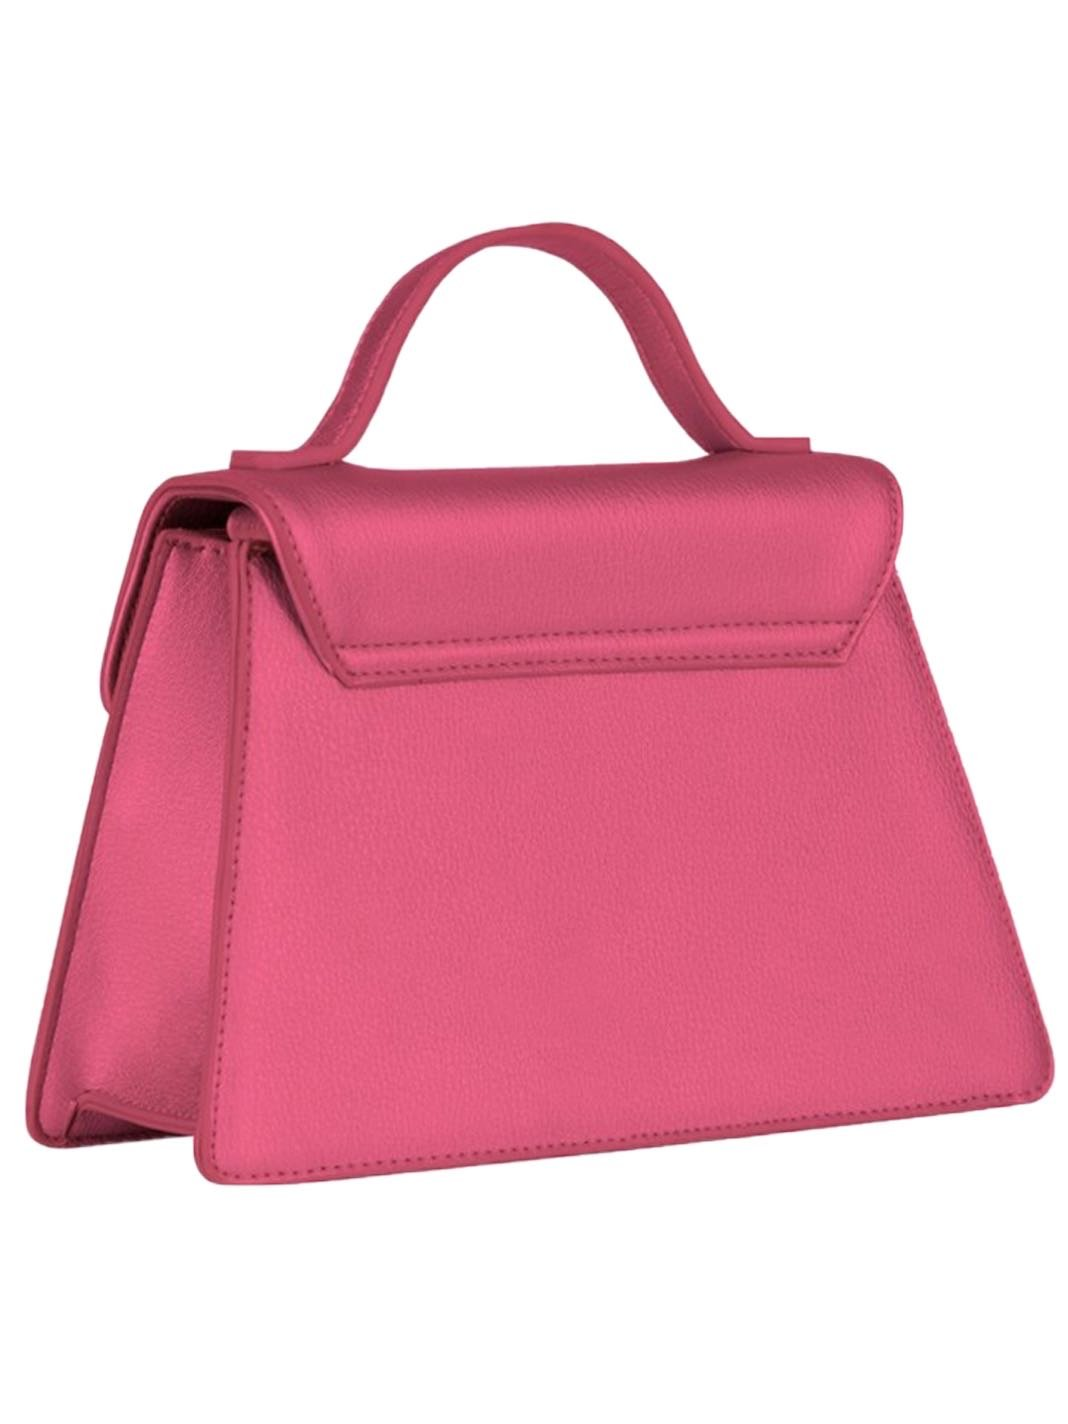 Mini Layla Bag Metal Fuchsia - The Bobby Boga